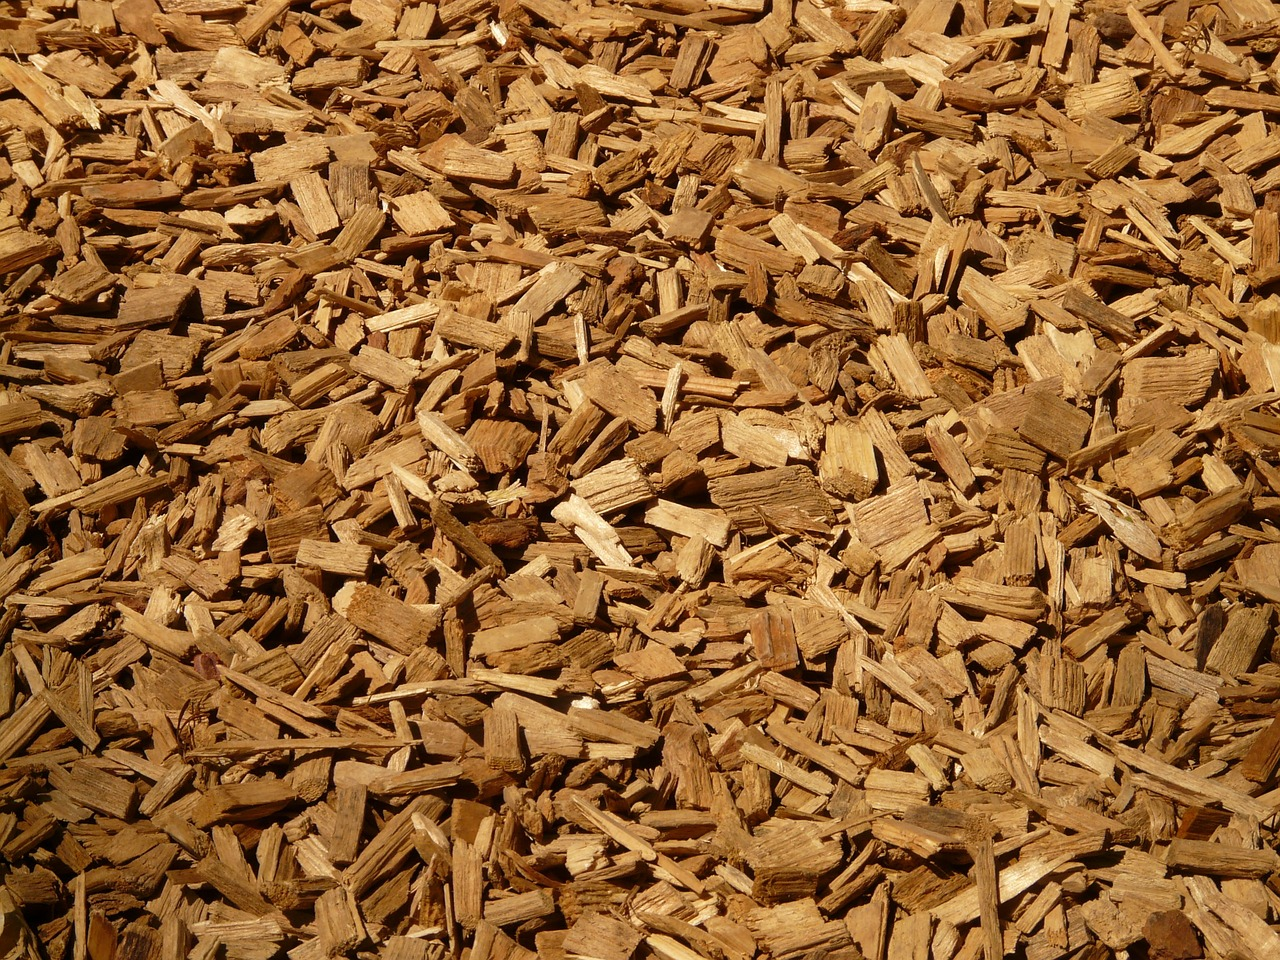 shredded shredder wood free photo